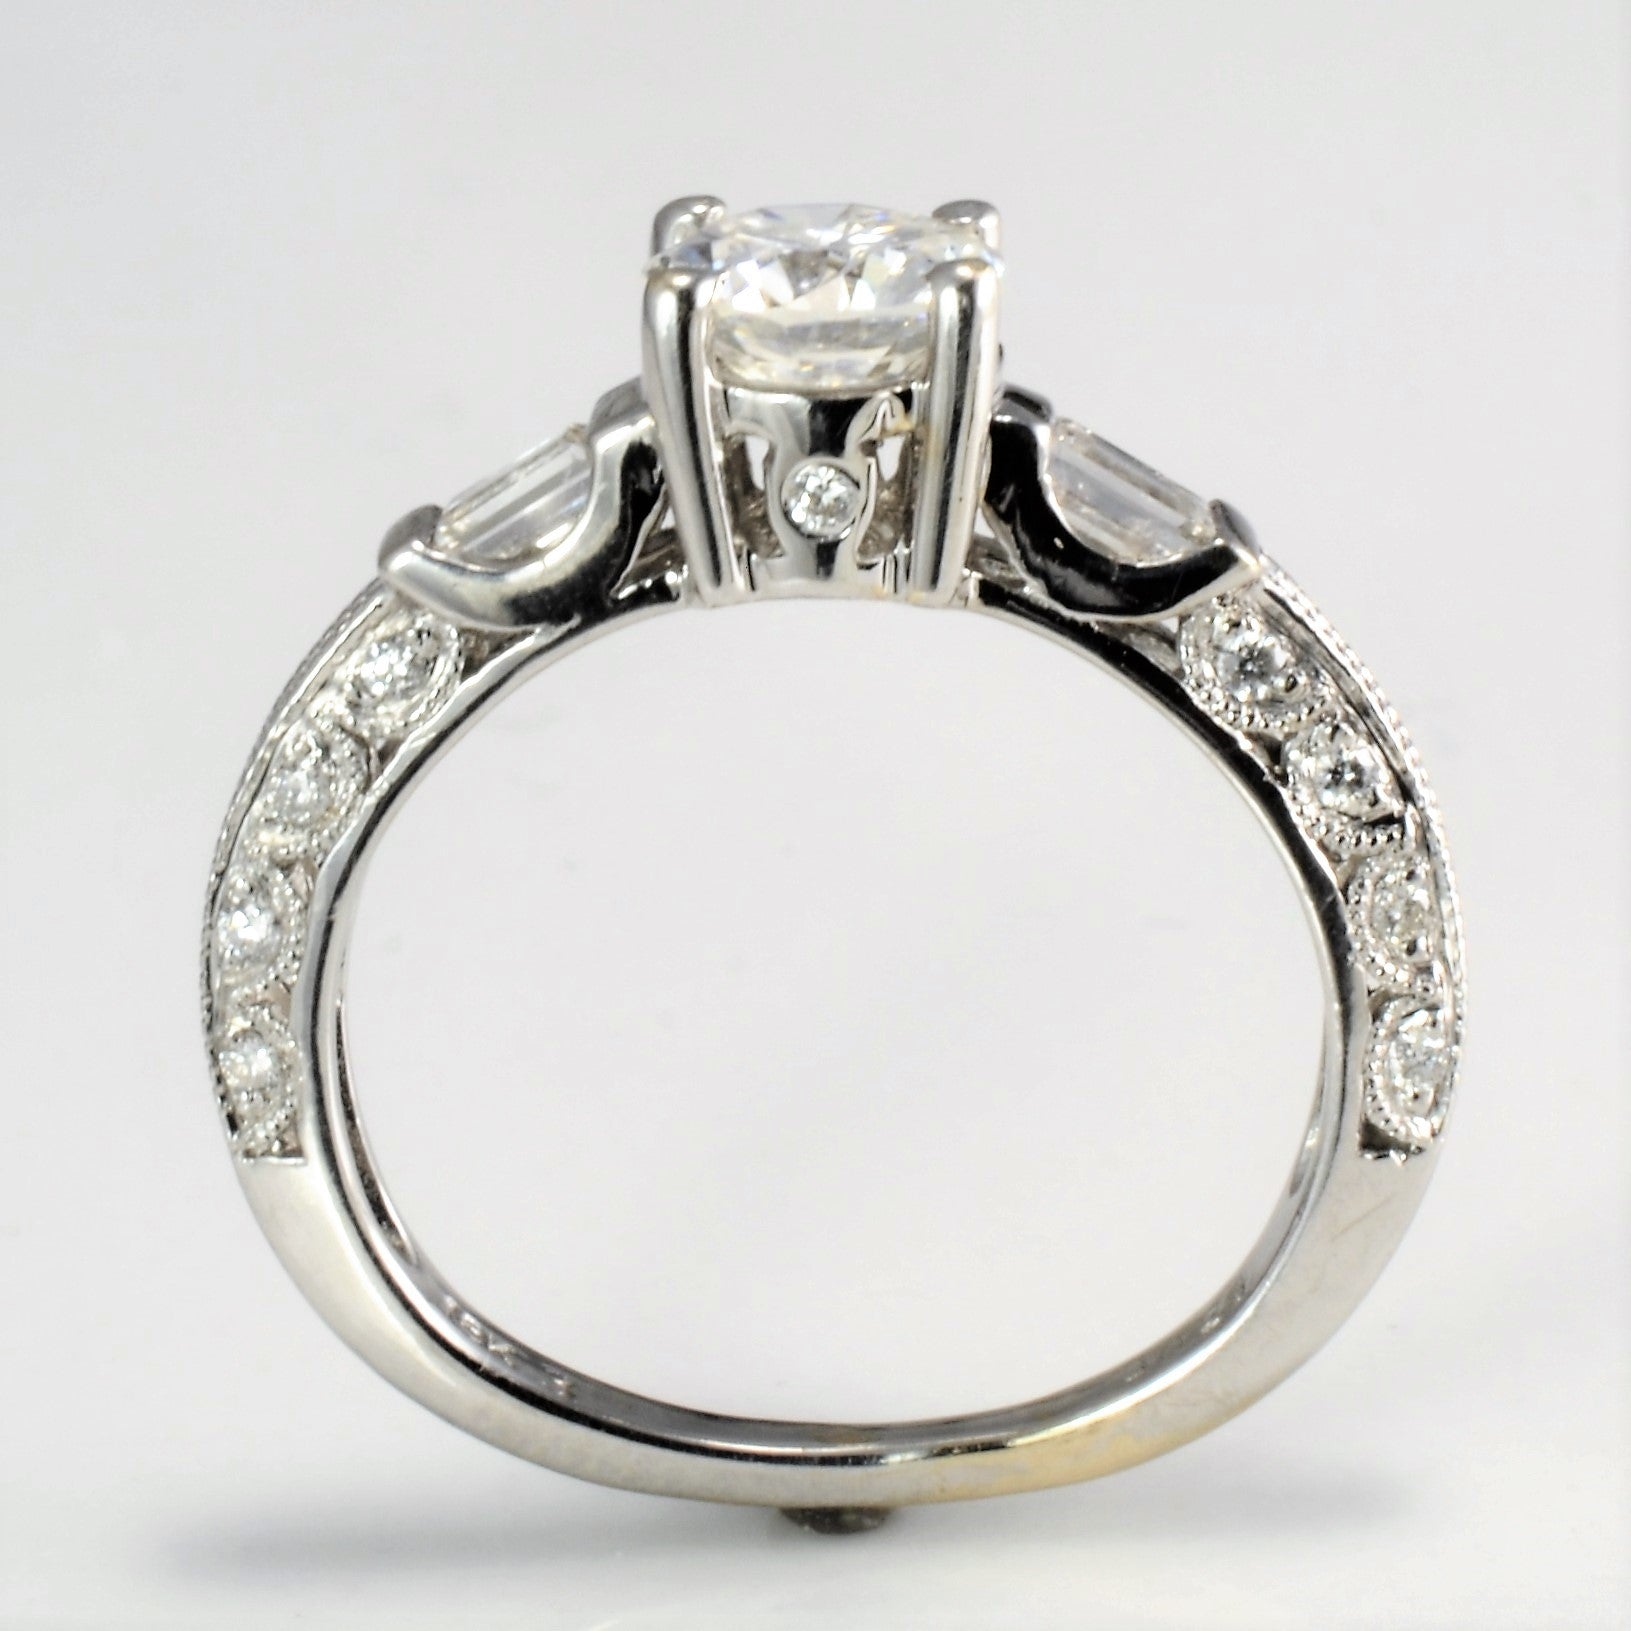 Round Brilliant Engagement Ring With Baguette Accents | 1.04 ctw |